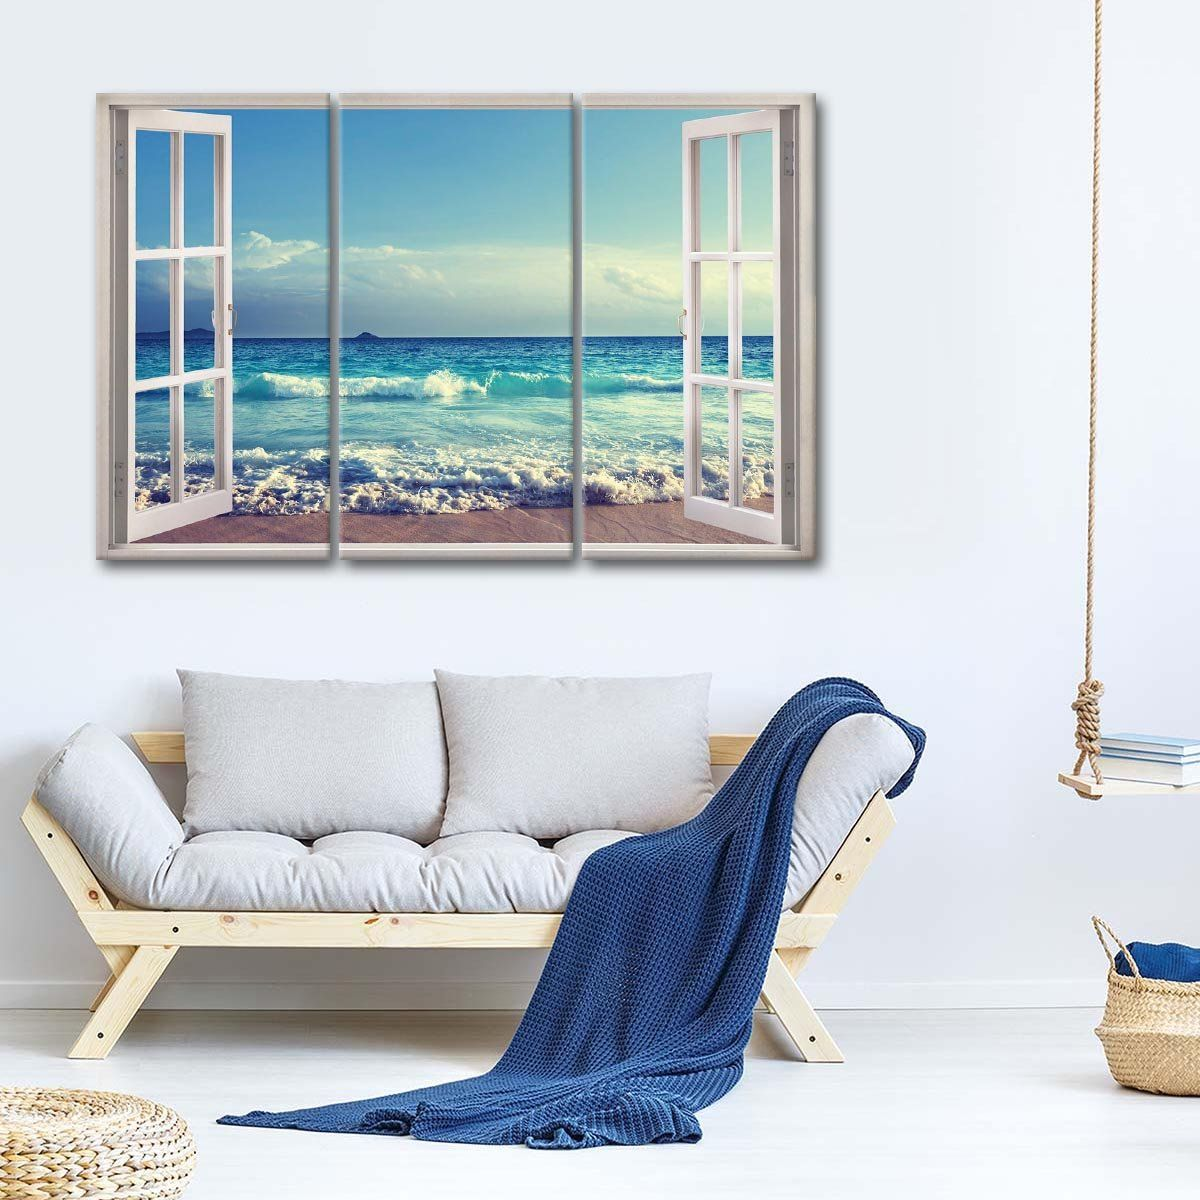 Love The Ocean Breeze Multi Panel Canvas Wall Art In 2020 Canvas Wall Art Beach Wall Art Multi Panel Canvas